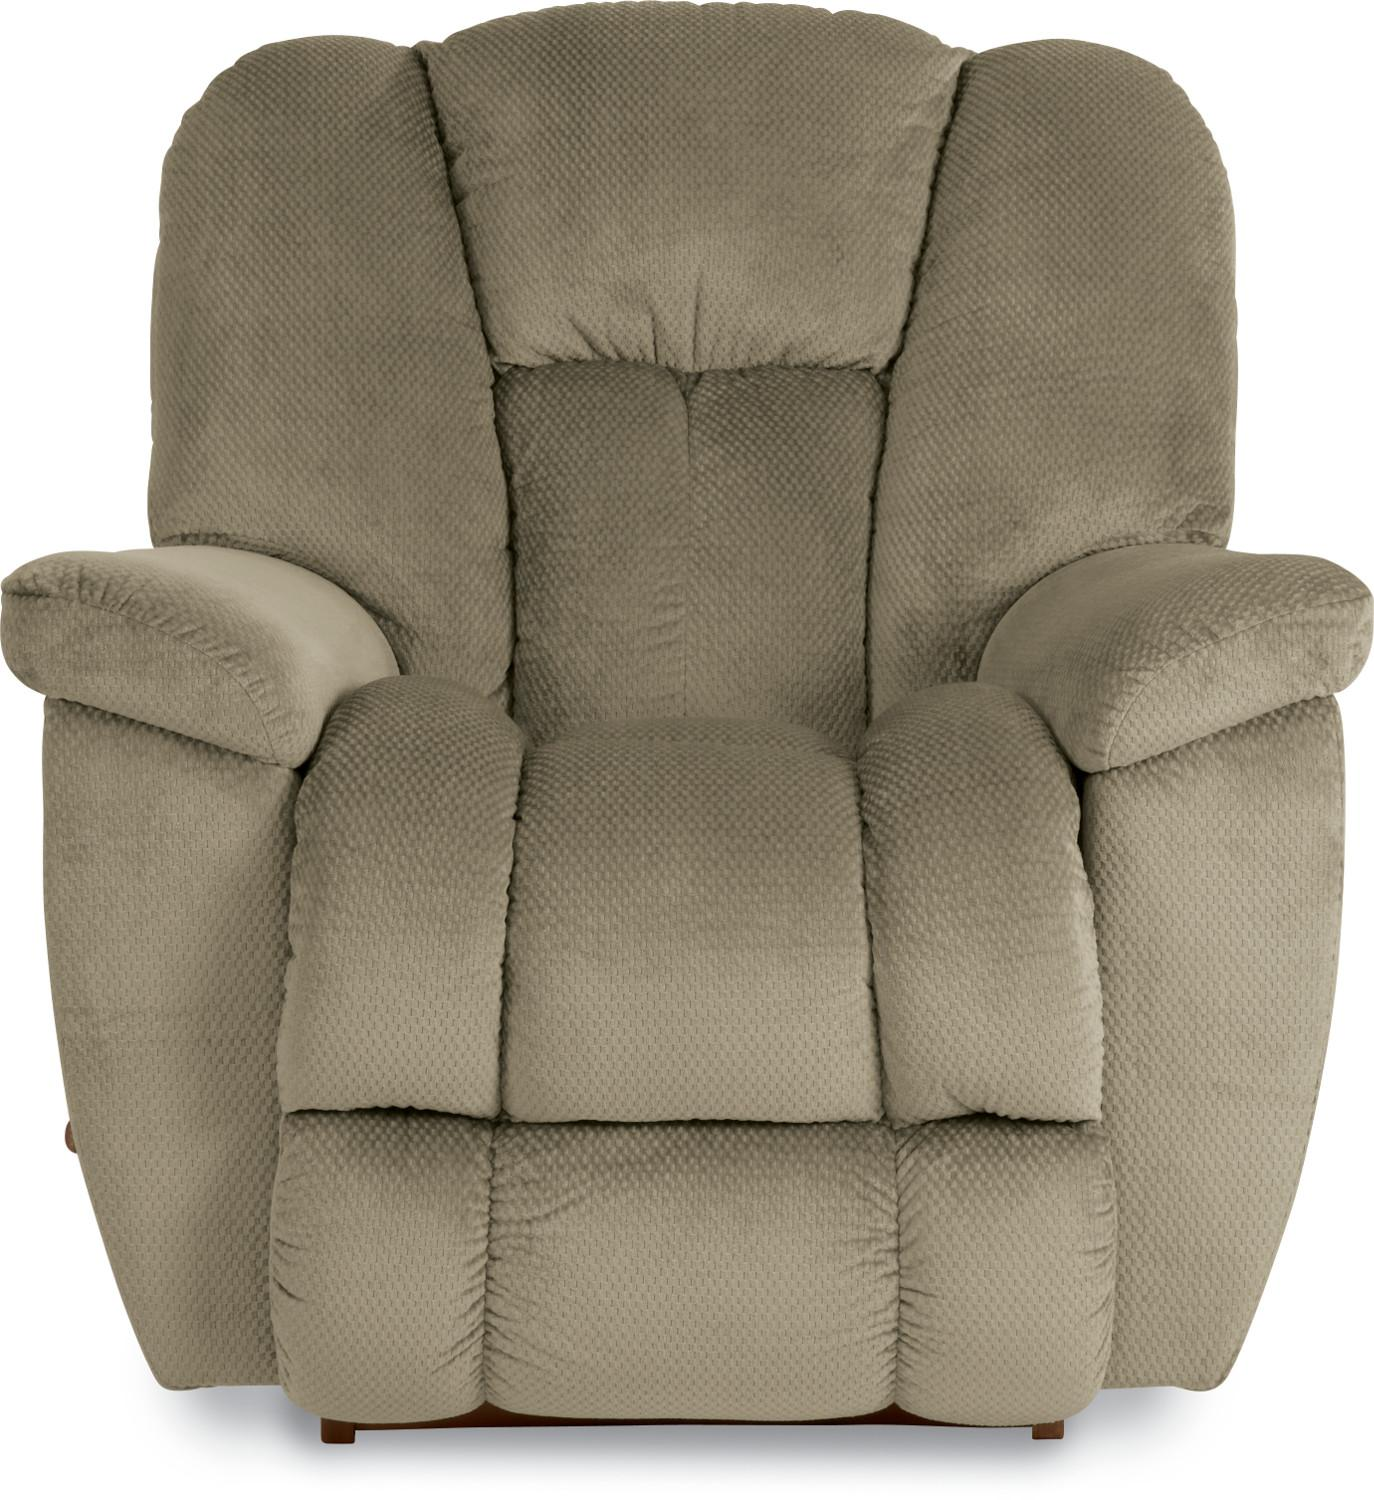 Maverick Reclina-Way Recliner by La-Z-Boy at Adcock Furniture